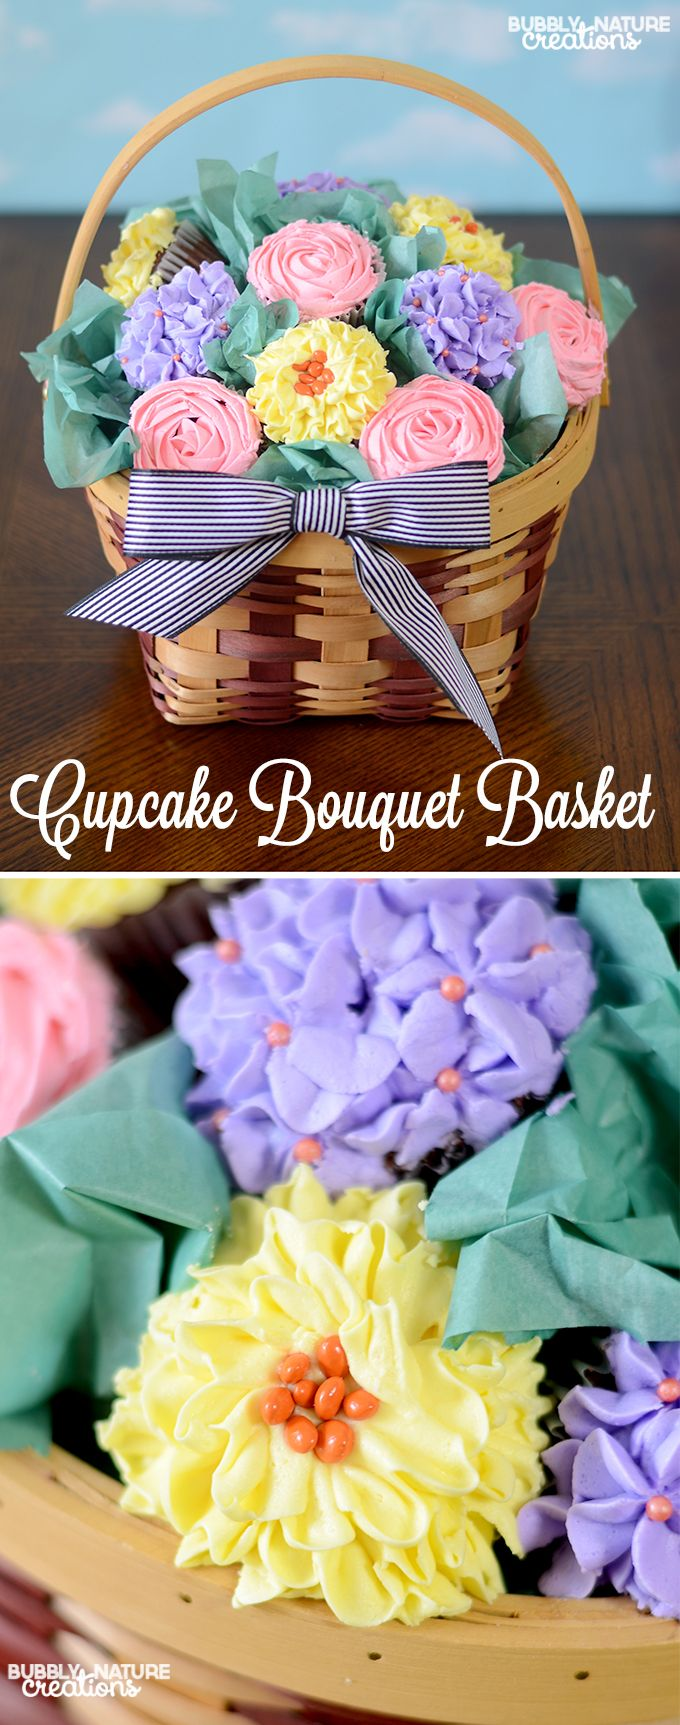 Cupcake Bouquet Basket!  Such a pretty Mother's Day gift idea or beautiful party centerpiece!